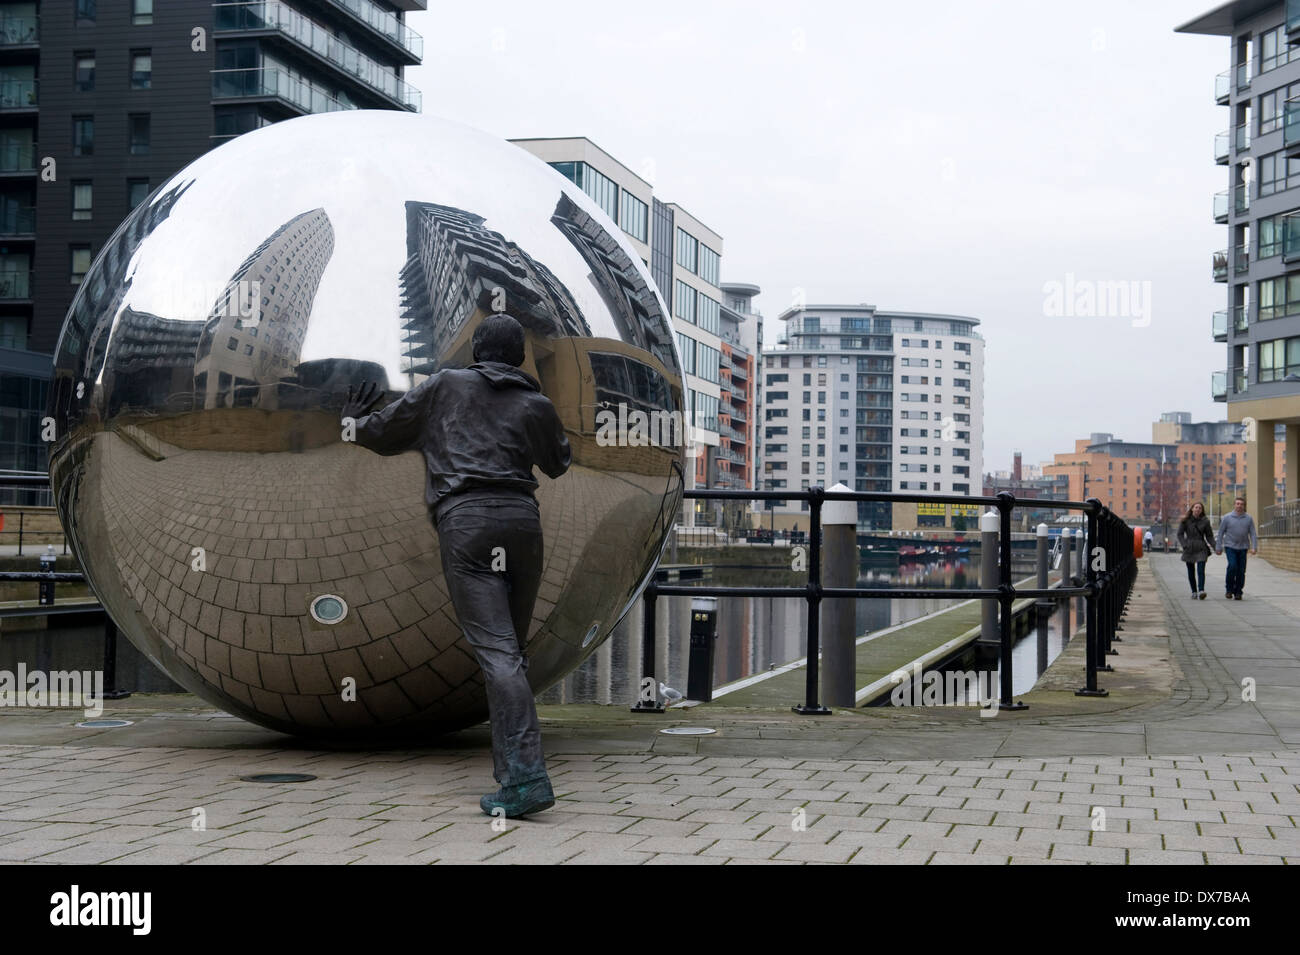 Sculpture in New Dock, formerly Clarence Dock, Leeds, showing life size bronze figure pushing a stainless steel ball. - Stock Image